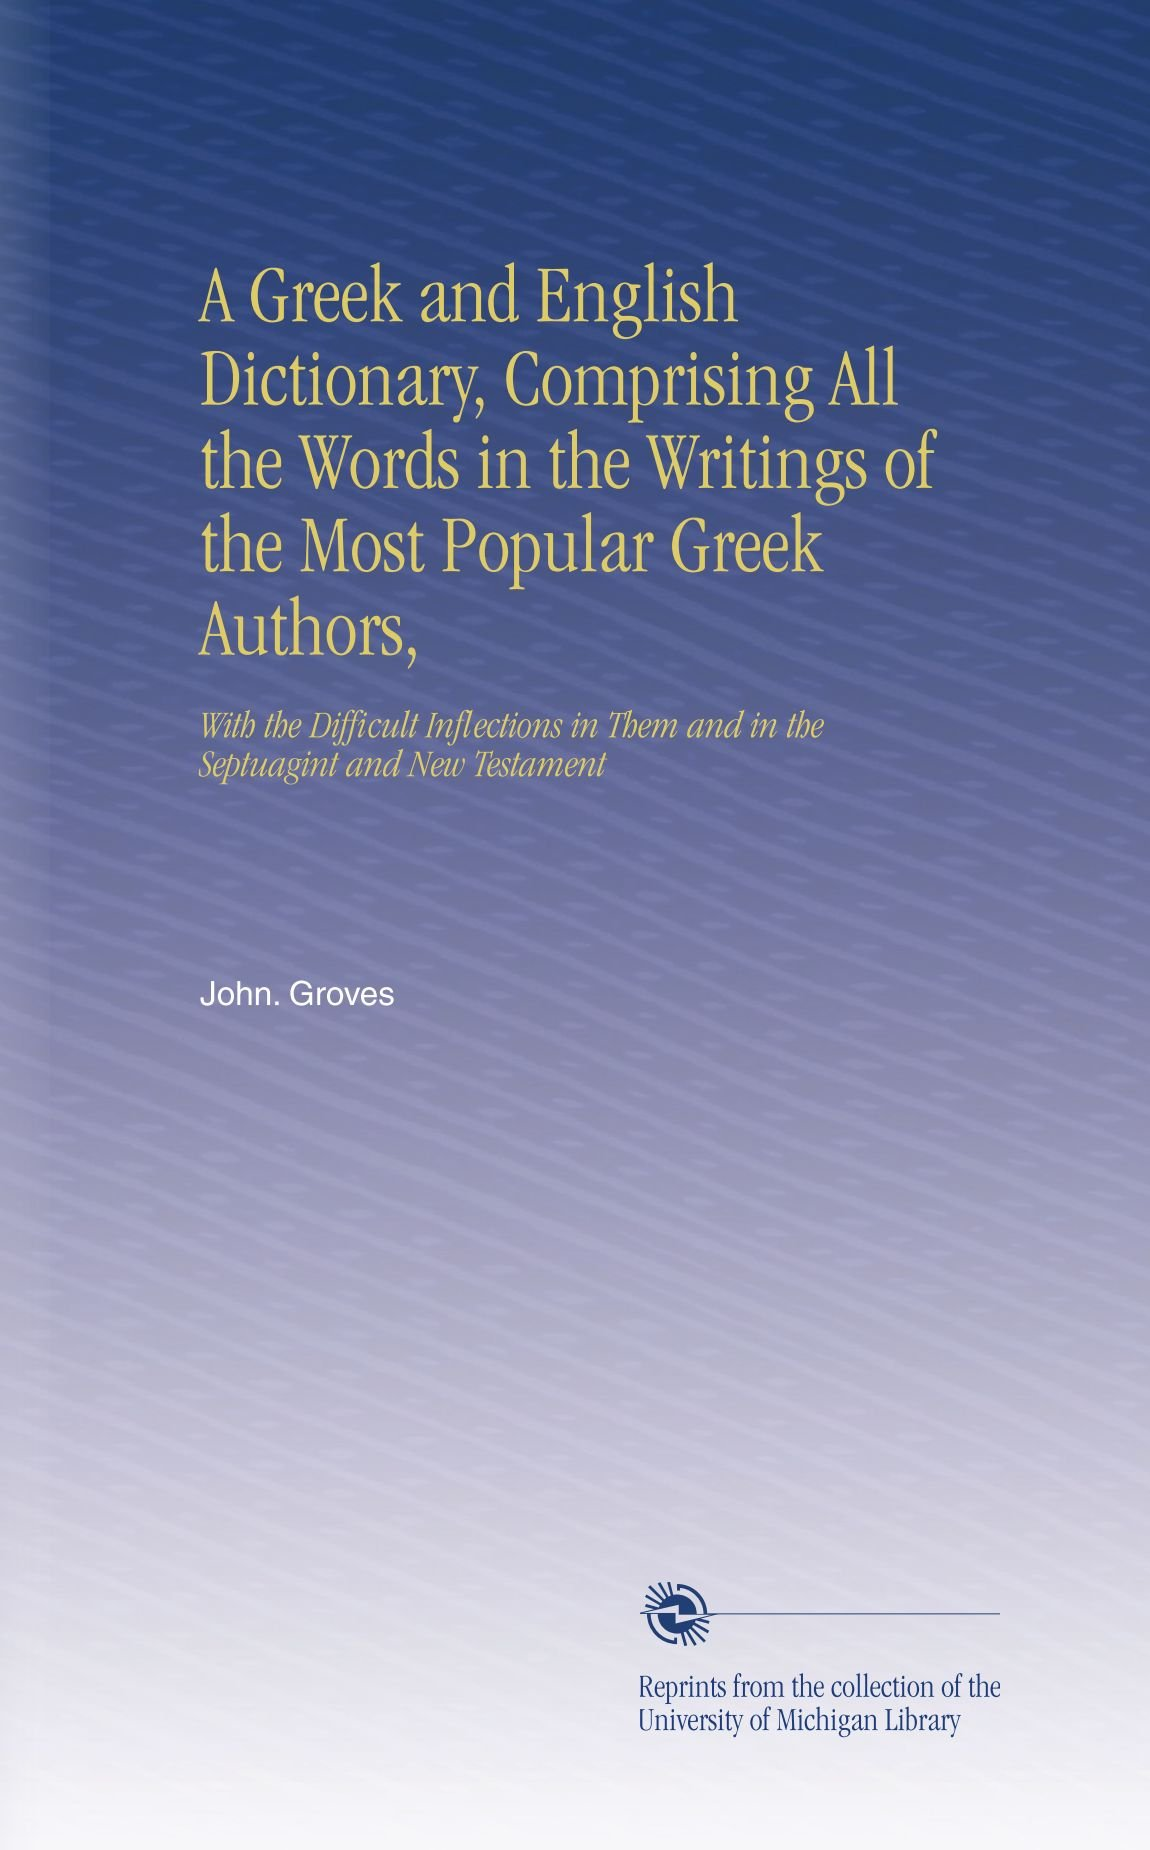 Read Online A Greek and English Dictionary, Comprising All the Words in the Writings of the Most Popular Greek Authors,: With the Difficult Inflections in Them and in the Septuagint and New Testament pdf epub